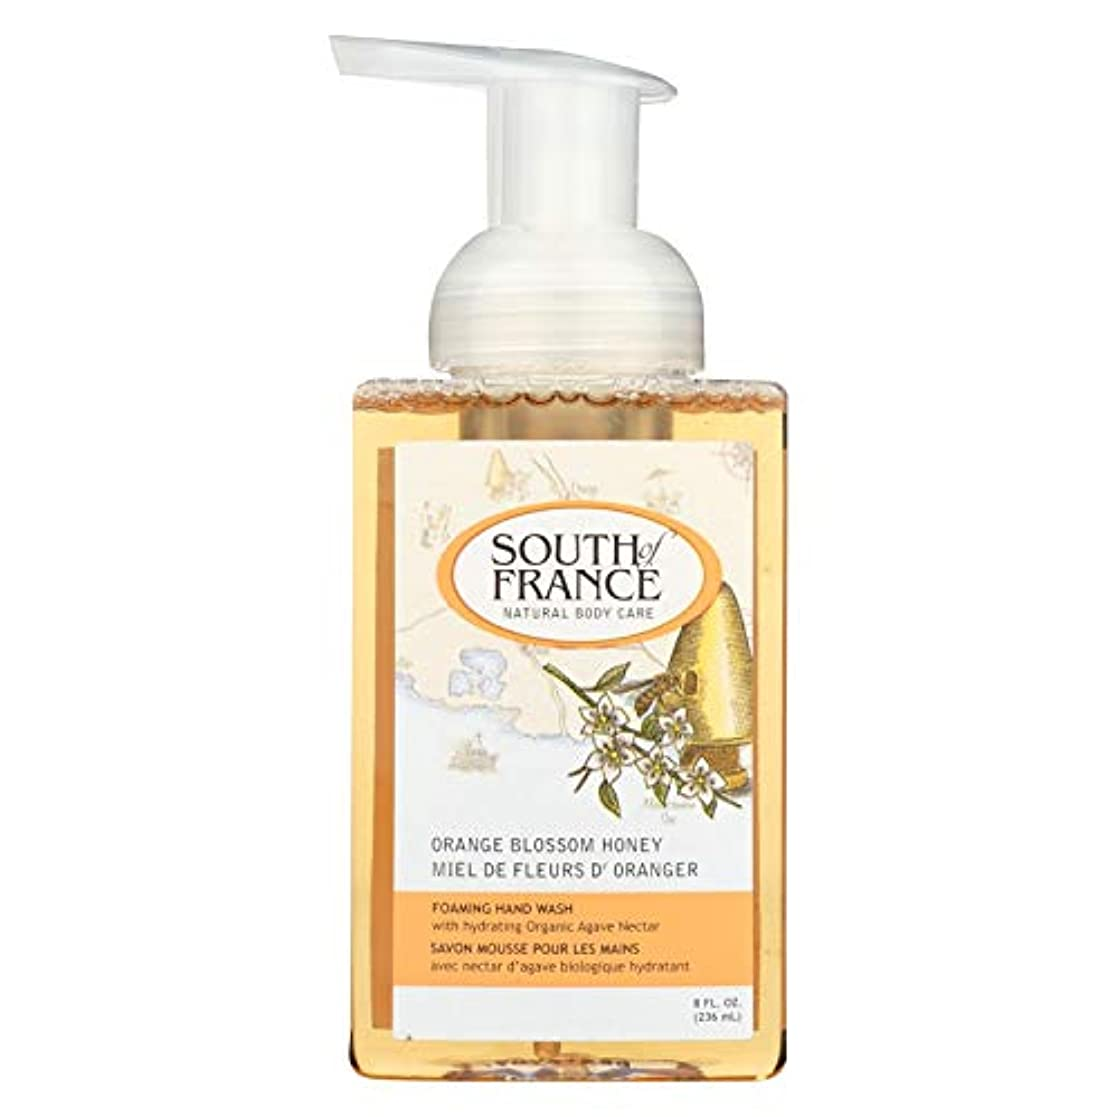 考古学者アルカイックどのくらいの頻度でHand Soap - Foaming - Orange Blossom Honey - 8 oz - 1 each by South Of France